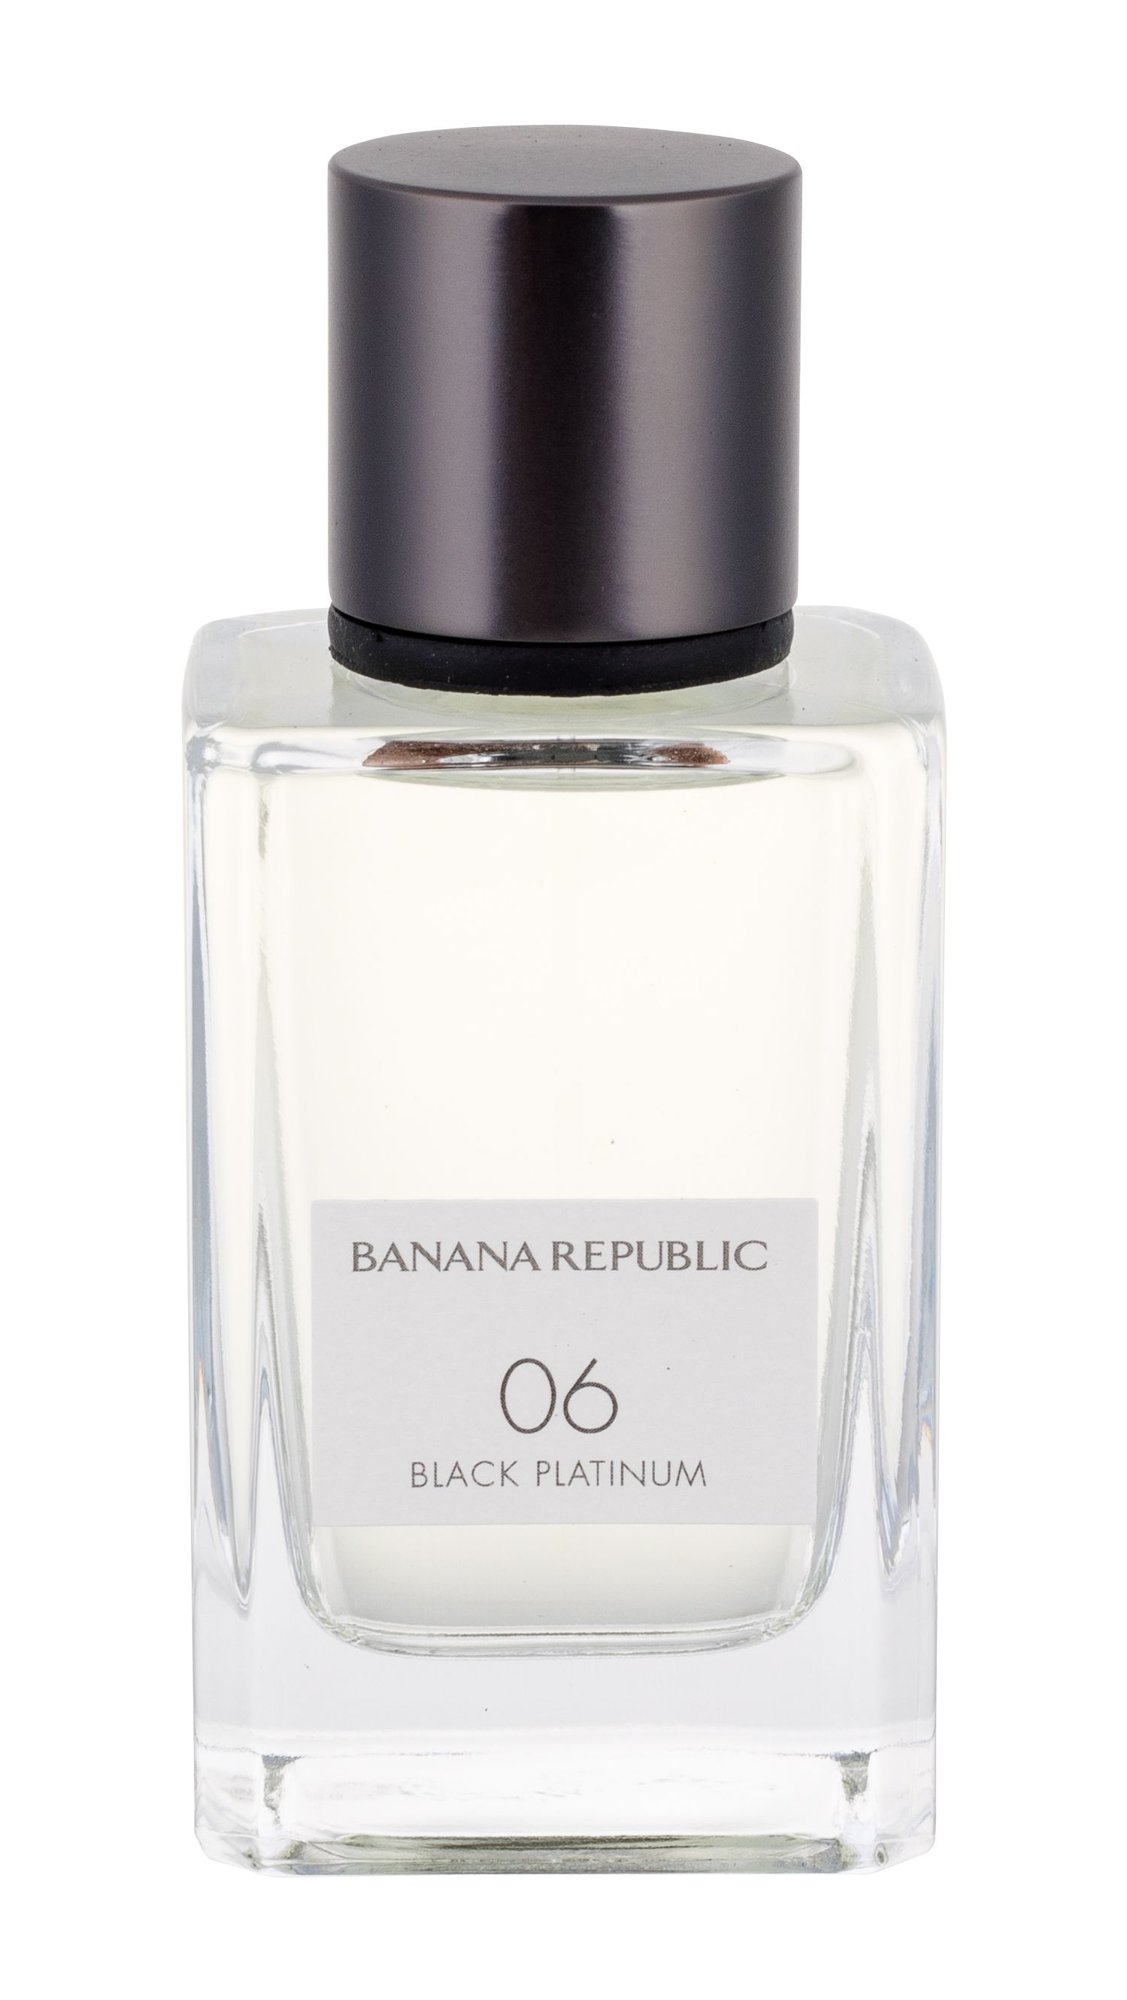 Banana Republic 06 Black Platinum EDP 75ml